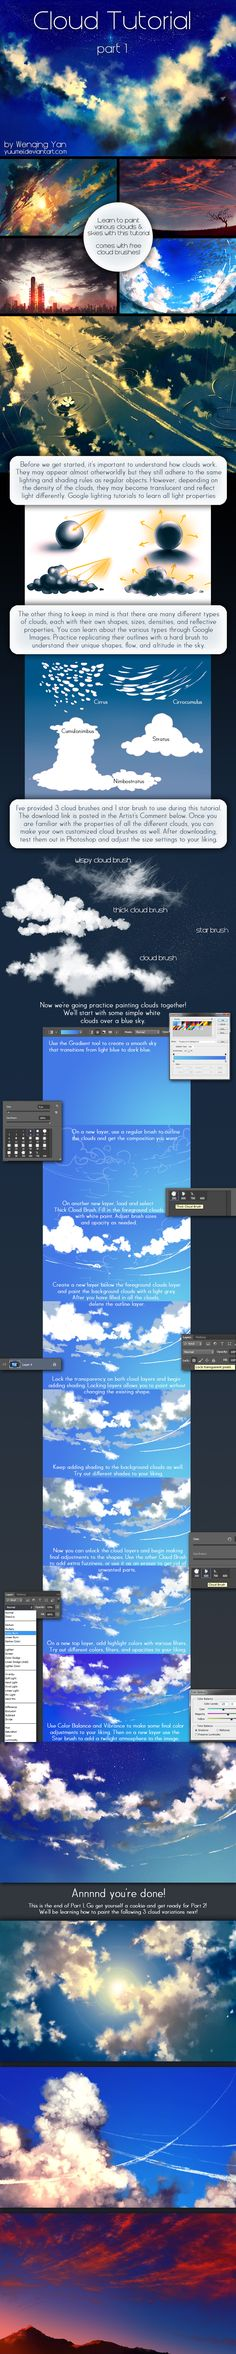 Cloud Tutorial Part 1 by yuumei [dA]